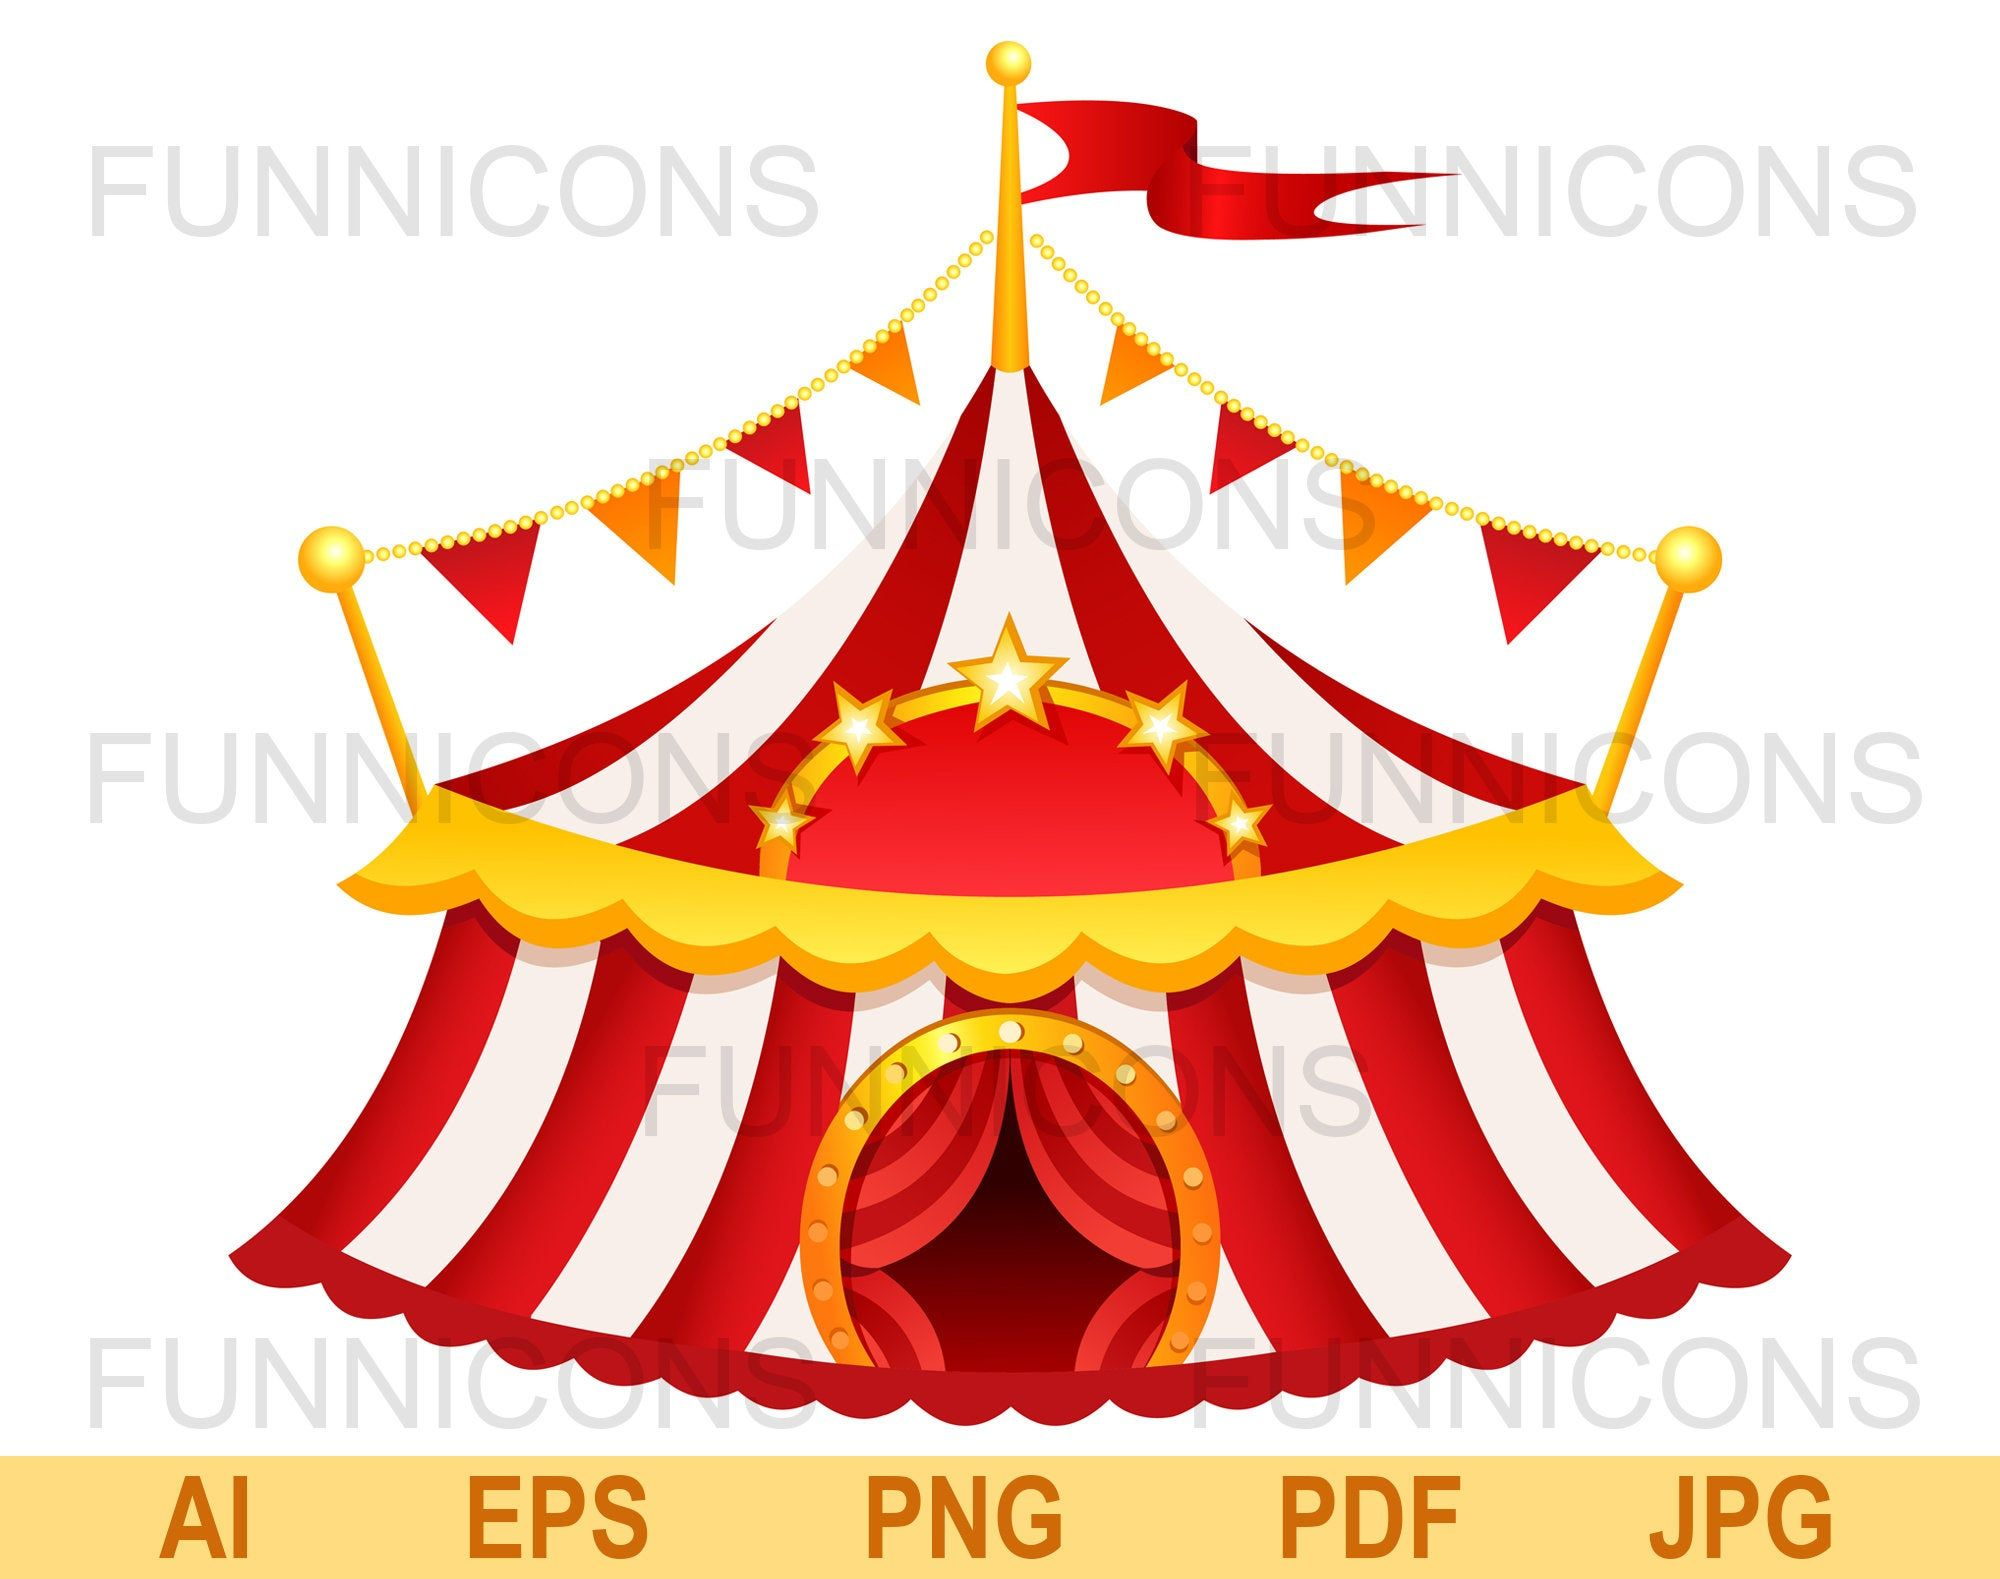 Vector Clipart Circus Tent Ai Eps Png Pdf And Jpg Files Included Digital Files Instant Download Circus Tent Circus Pictures Clip Art